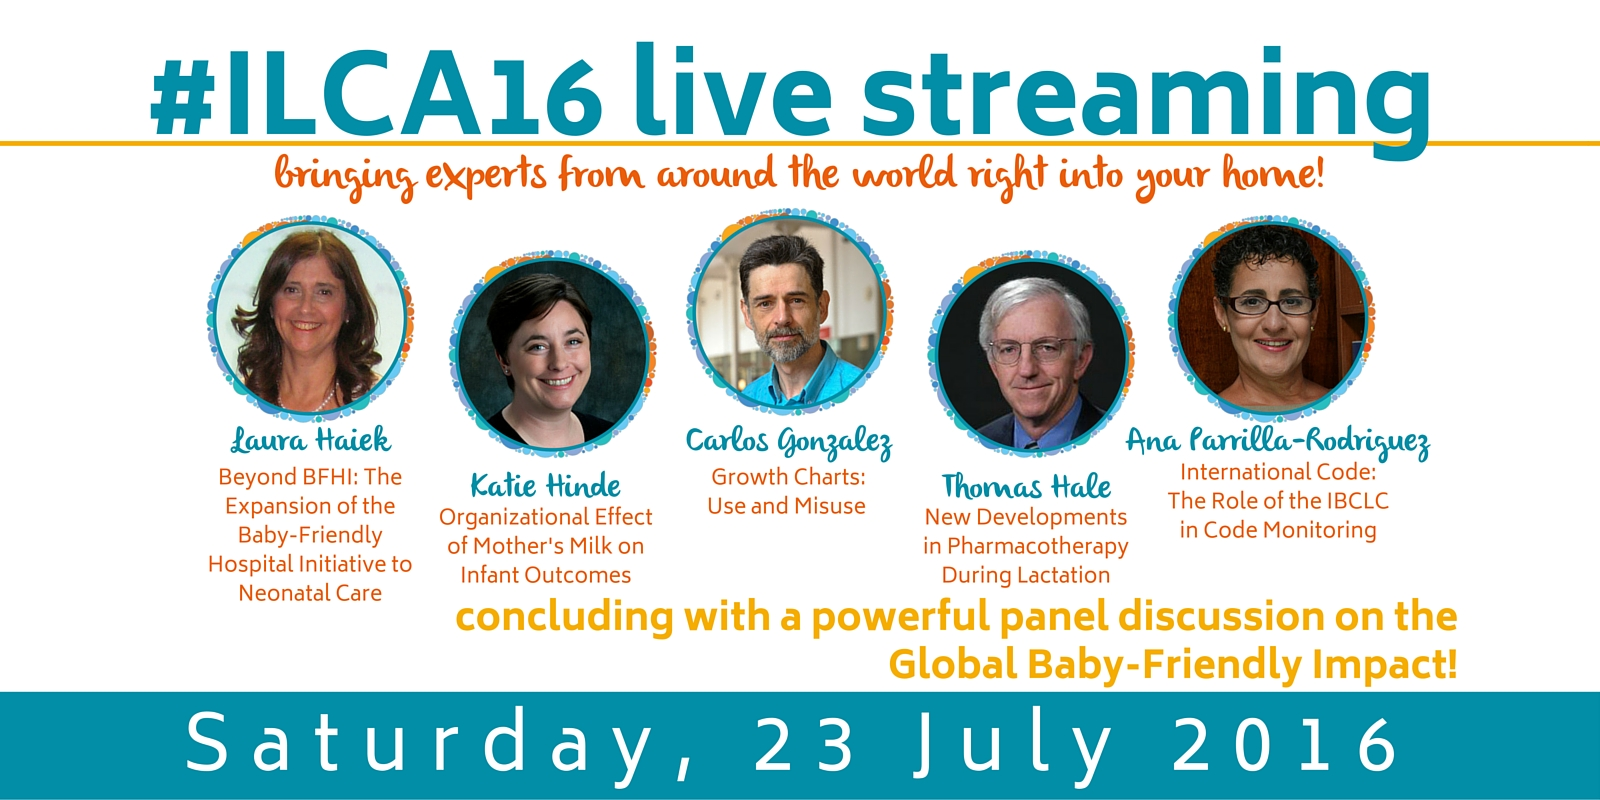 #ILCA16 live streaming